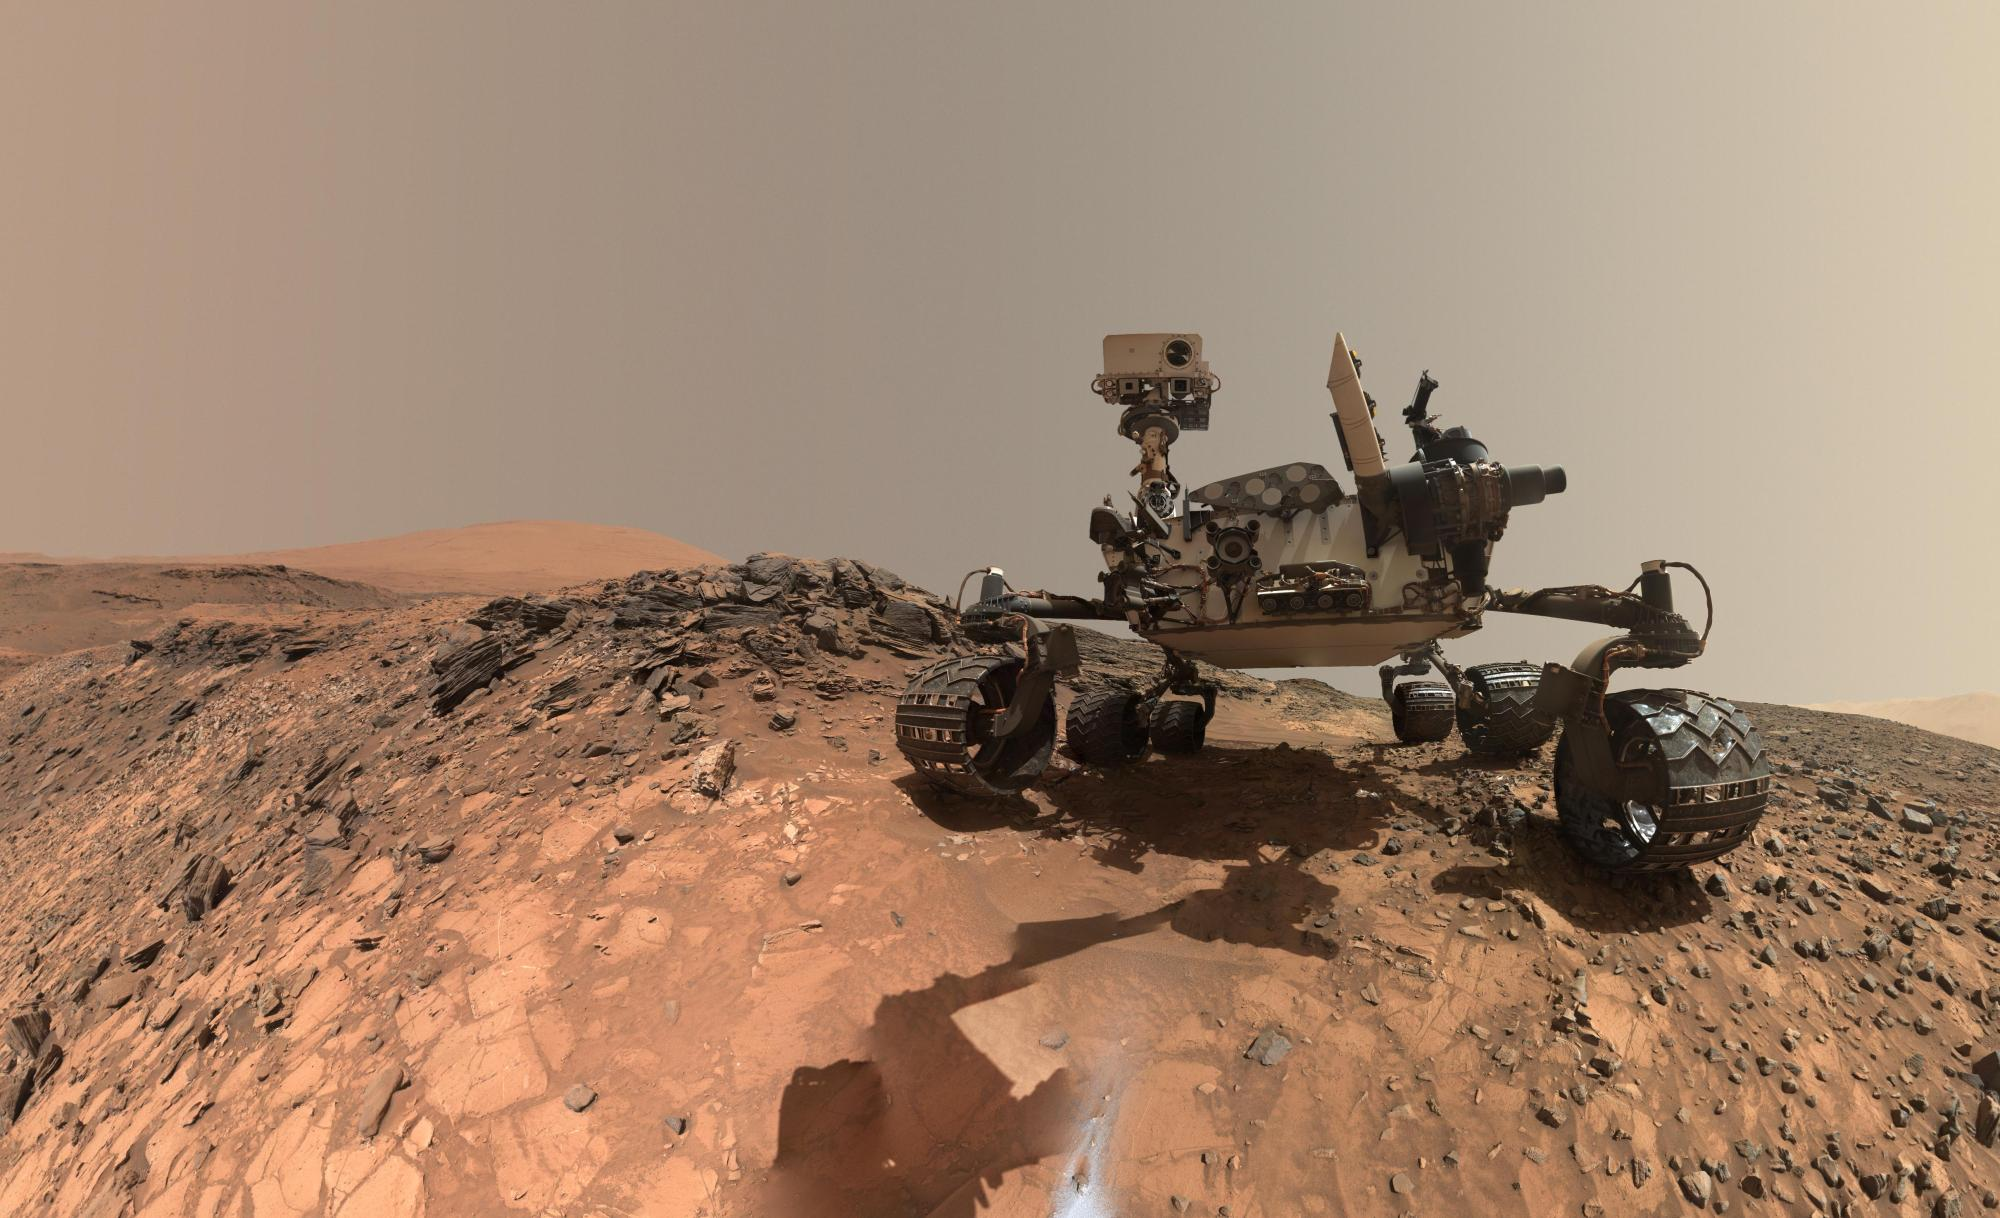 "Curiosity took this selfie while at ""Yellowknife Bay"" in 2013 whilst gathering rock samples for analysis. Note that while the shadow of the rover's robot arm can be assn, the arm itself is blanked from the images purely as a result of the angles used in individual shots and the way the images have been stitched together to provide a view of the rover"